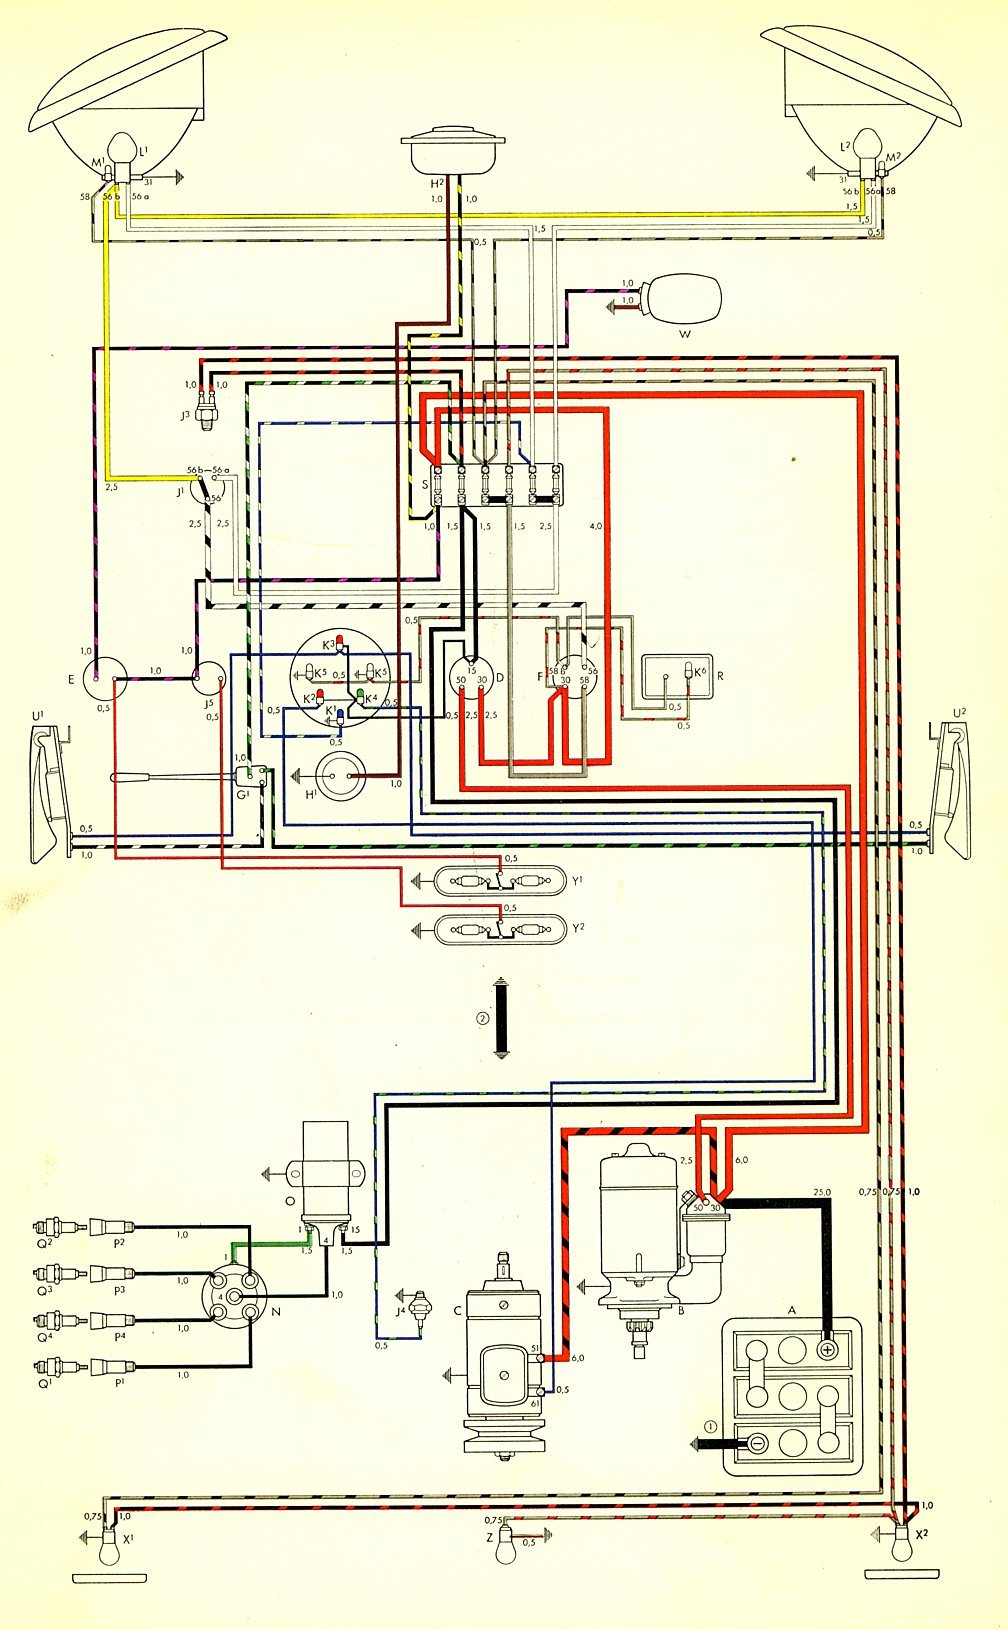 1977 vw wiring diagram wiring diagram experts1977 vw bus wiring diagram wiring diagram gp 1977 vw wiring diagram